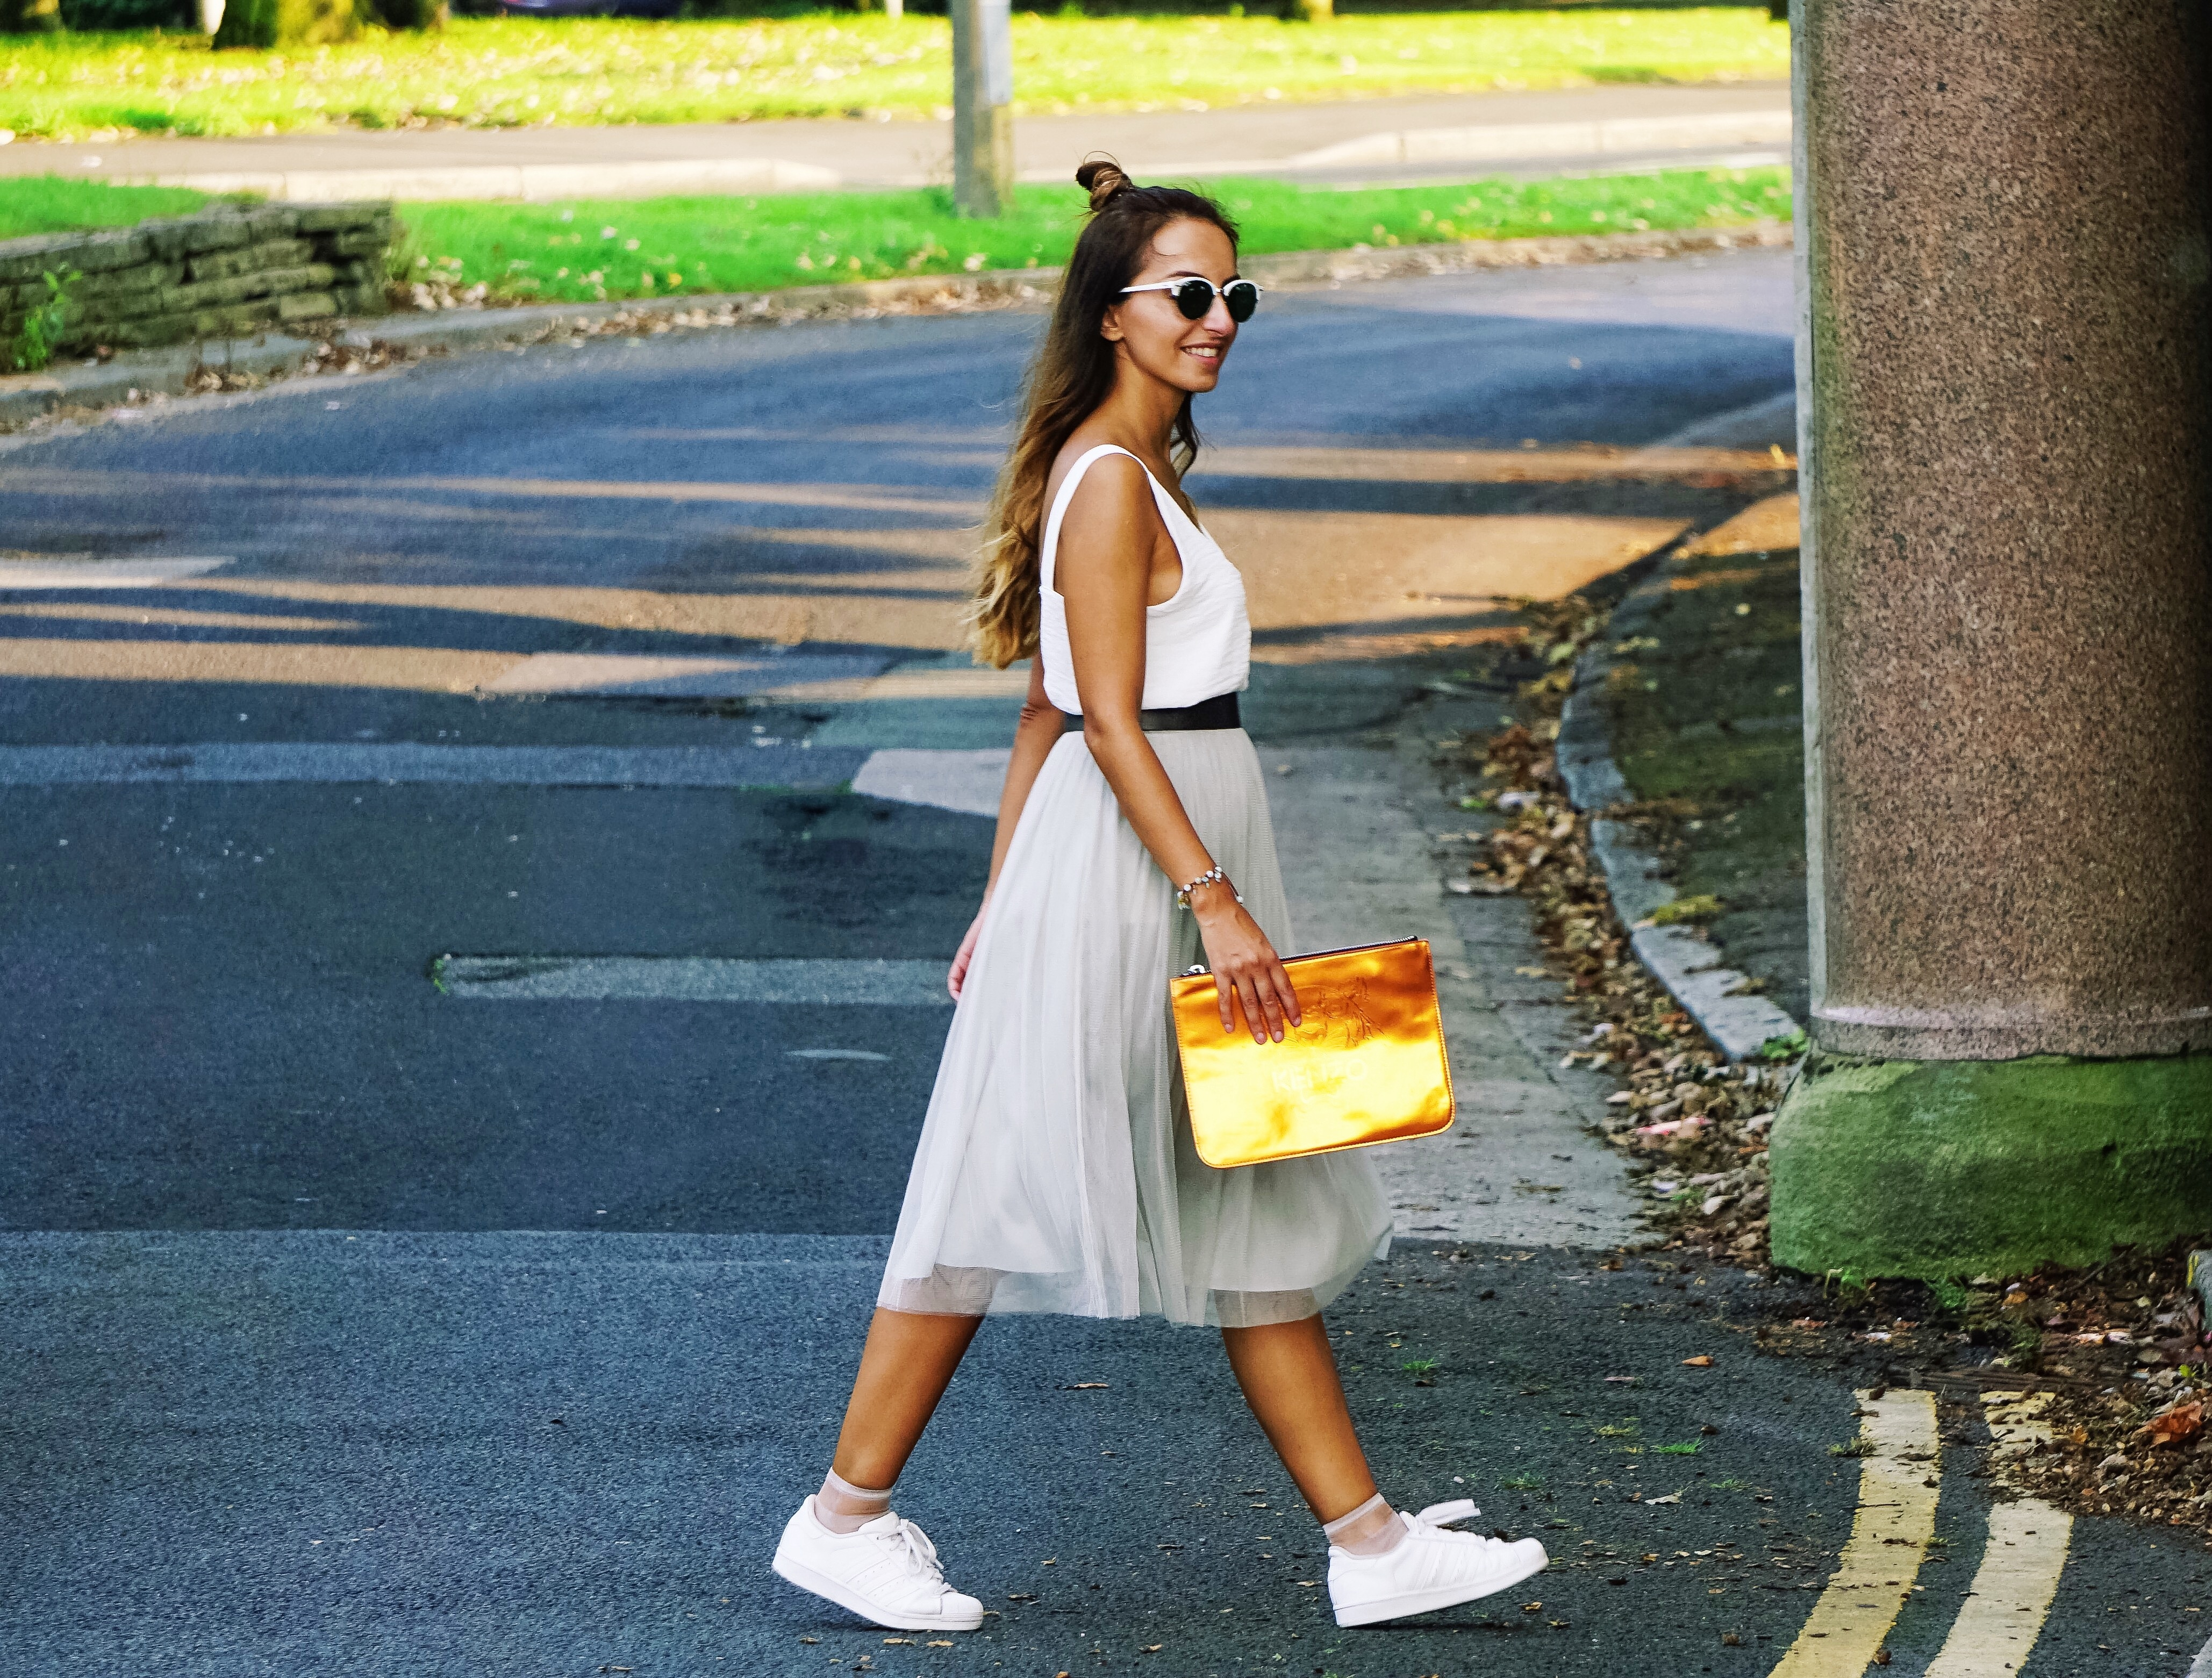 hyphy hip , tulle skirt , HyphyHip, RayBan, reiss, fashion blogger , ootd, outfit post, streetstyle, kenzo